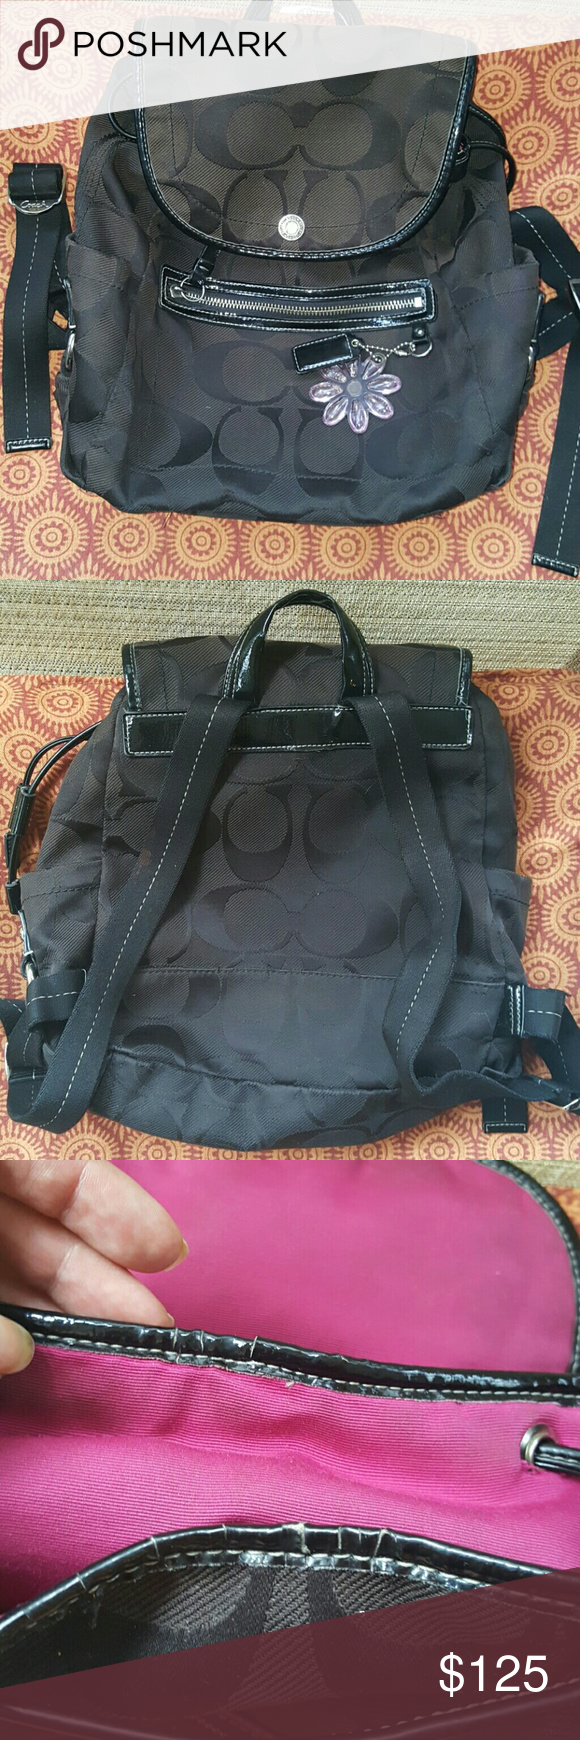 Coach back pack Will will post information a little later. I just figured my followers would want to see it as soon as possible. The only thing I can find wrong with it is the cracking around lining at the top. Barely noticeable.  Measurements: 10.5 x 11.5 x 5 in. Coach Bags Backpacks